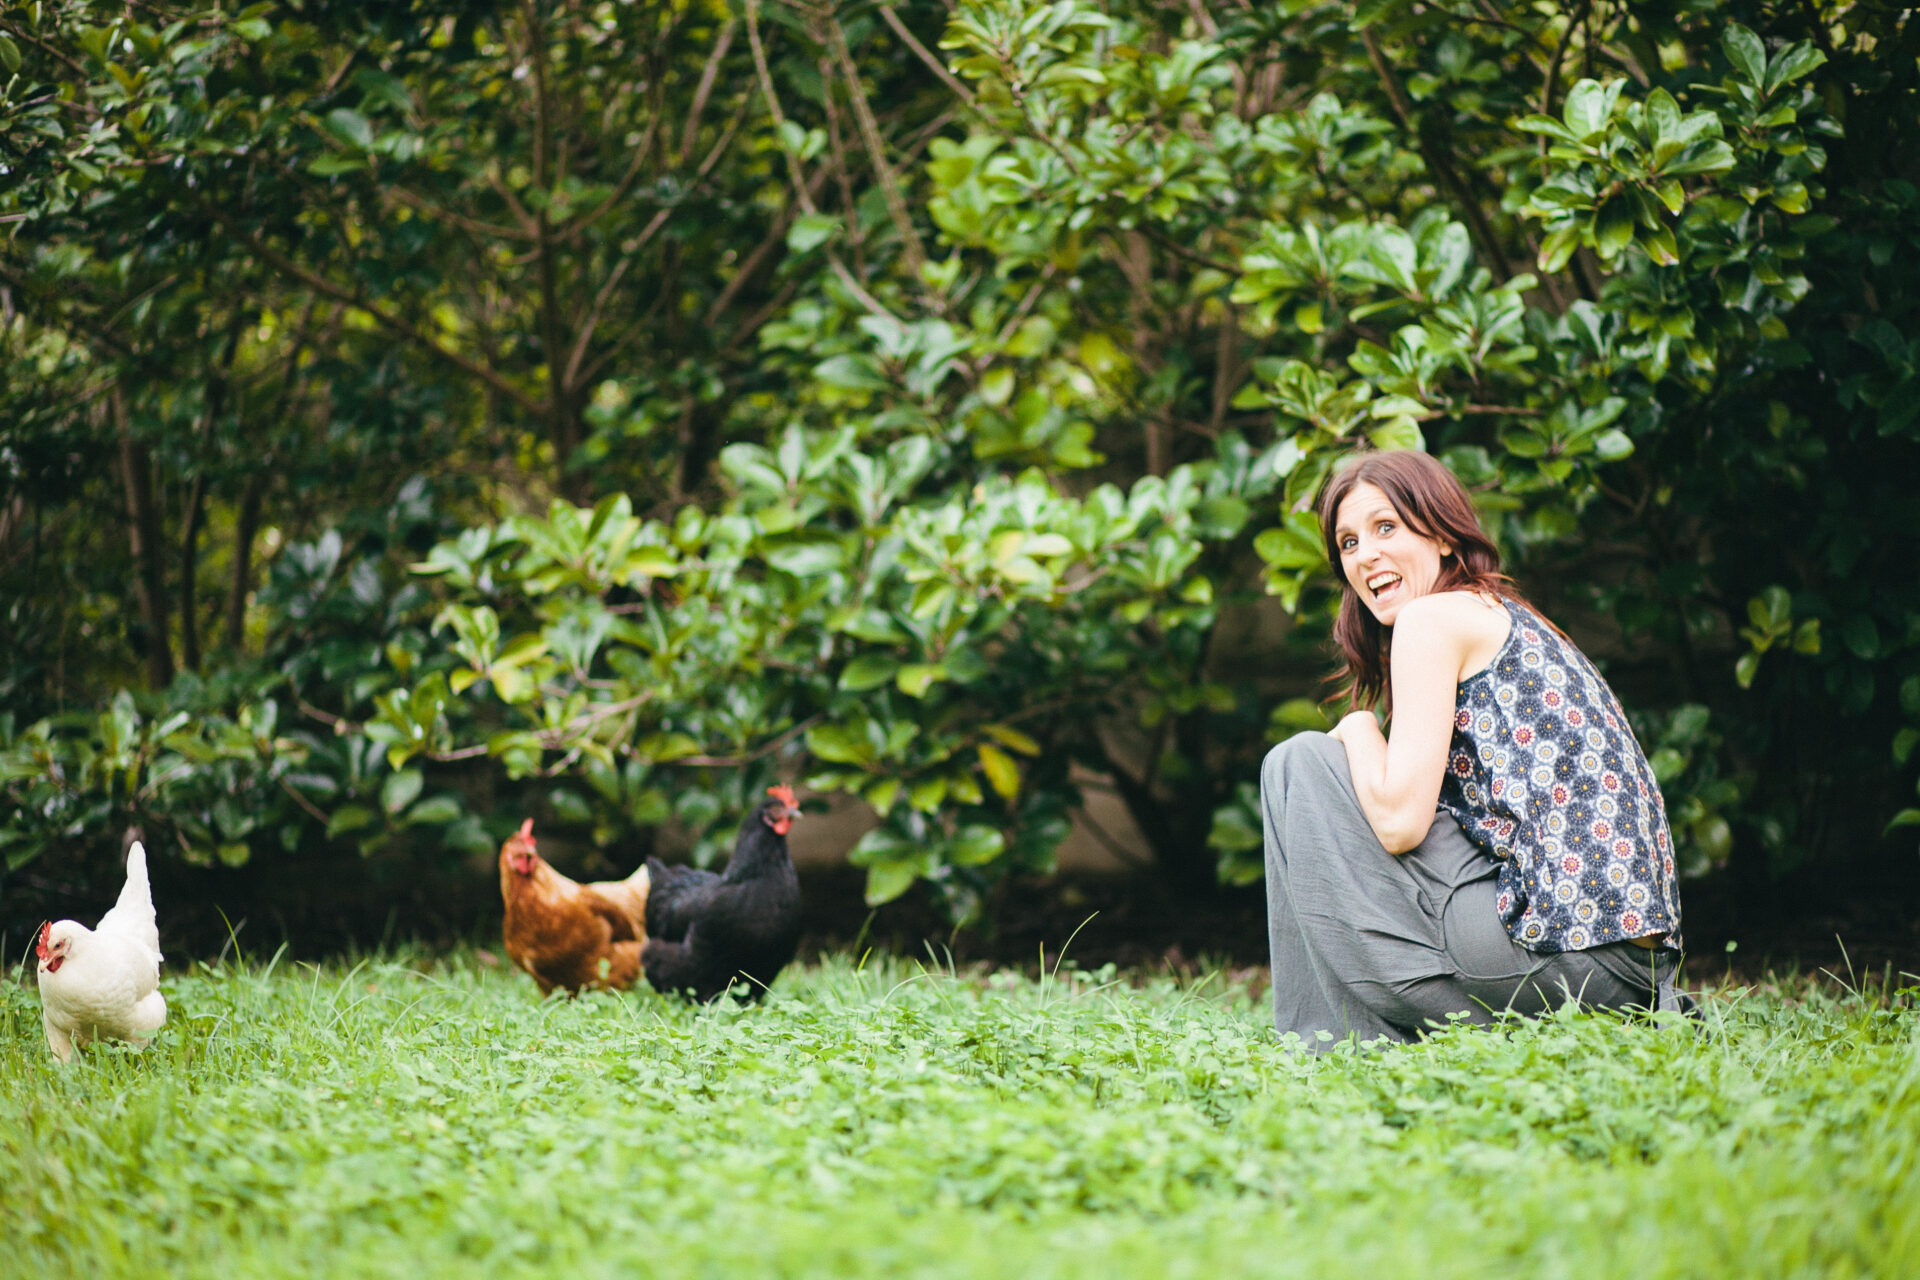 COOPED UP AT HOME – KEEPING BACKYARD CHICKENS